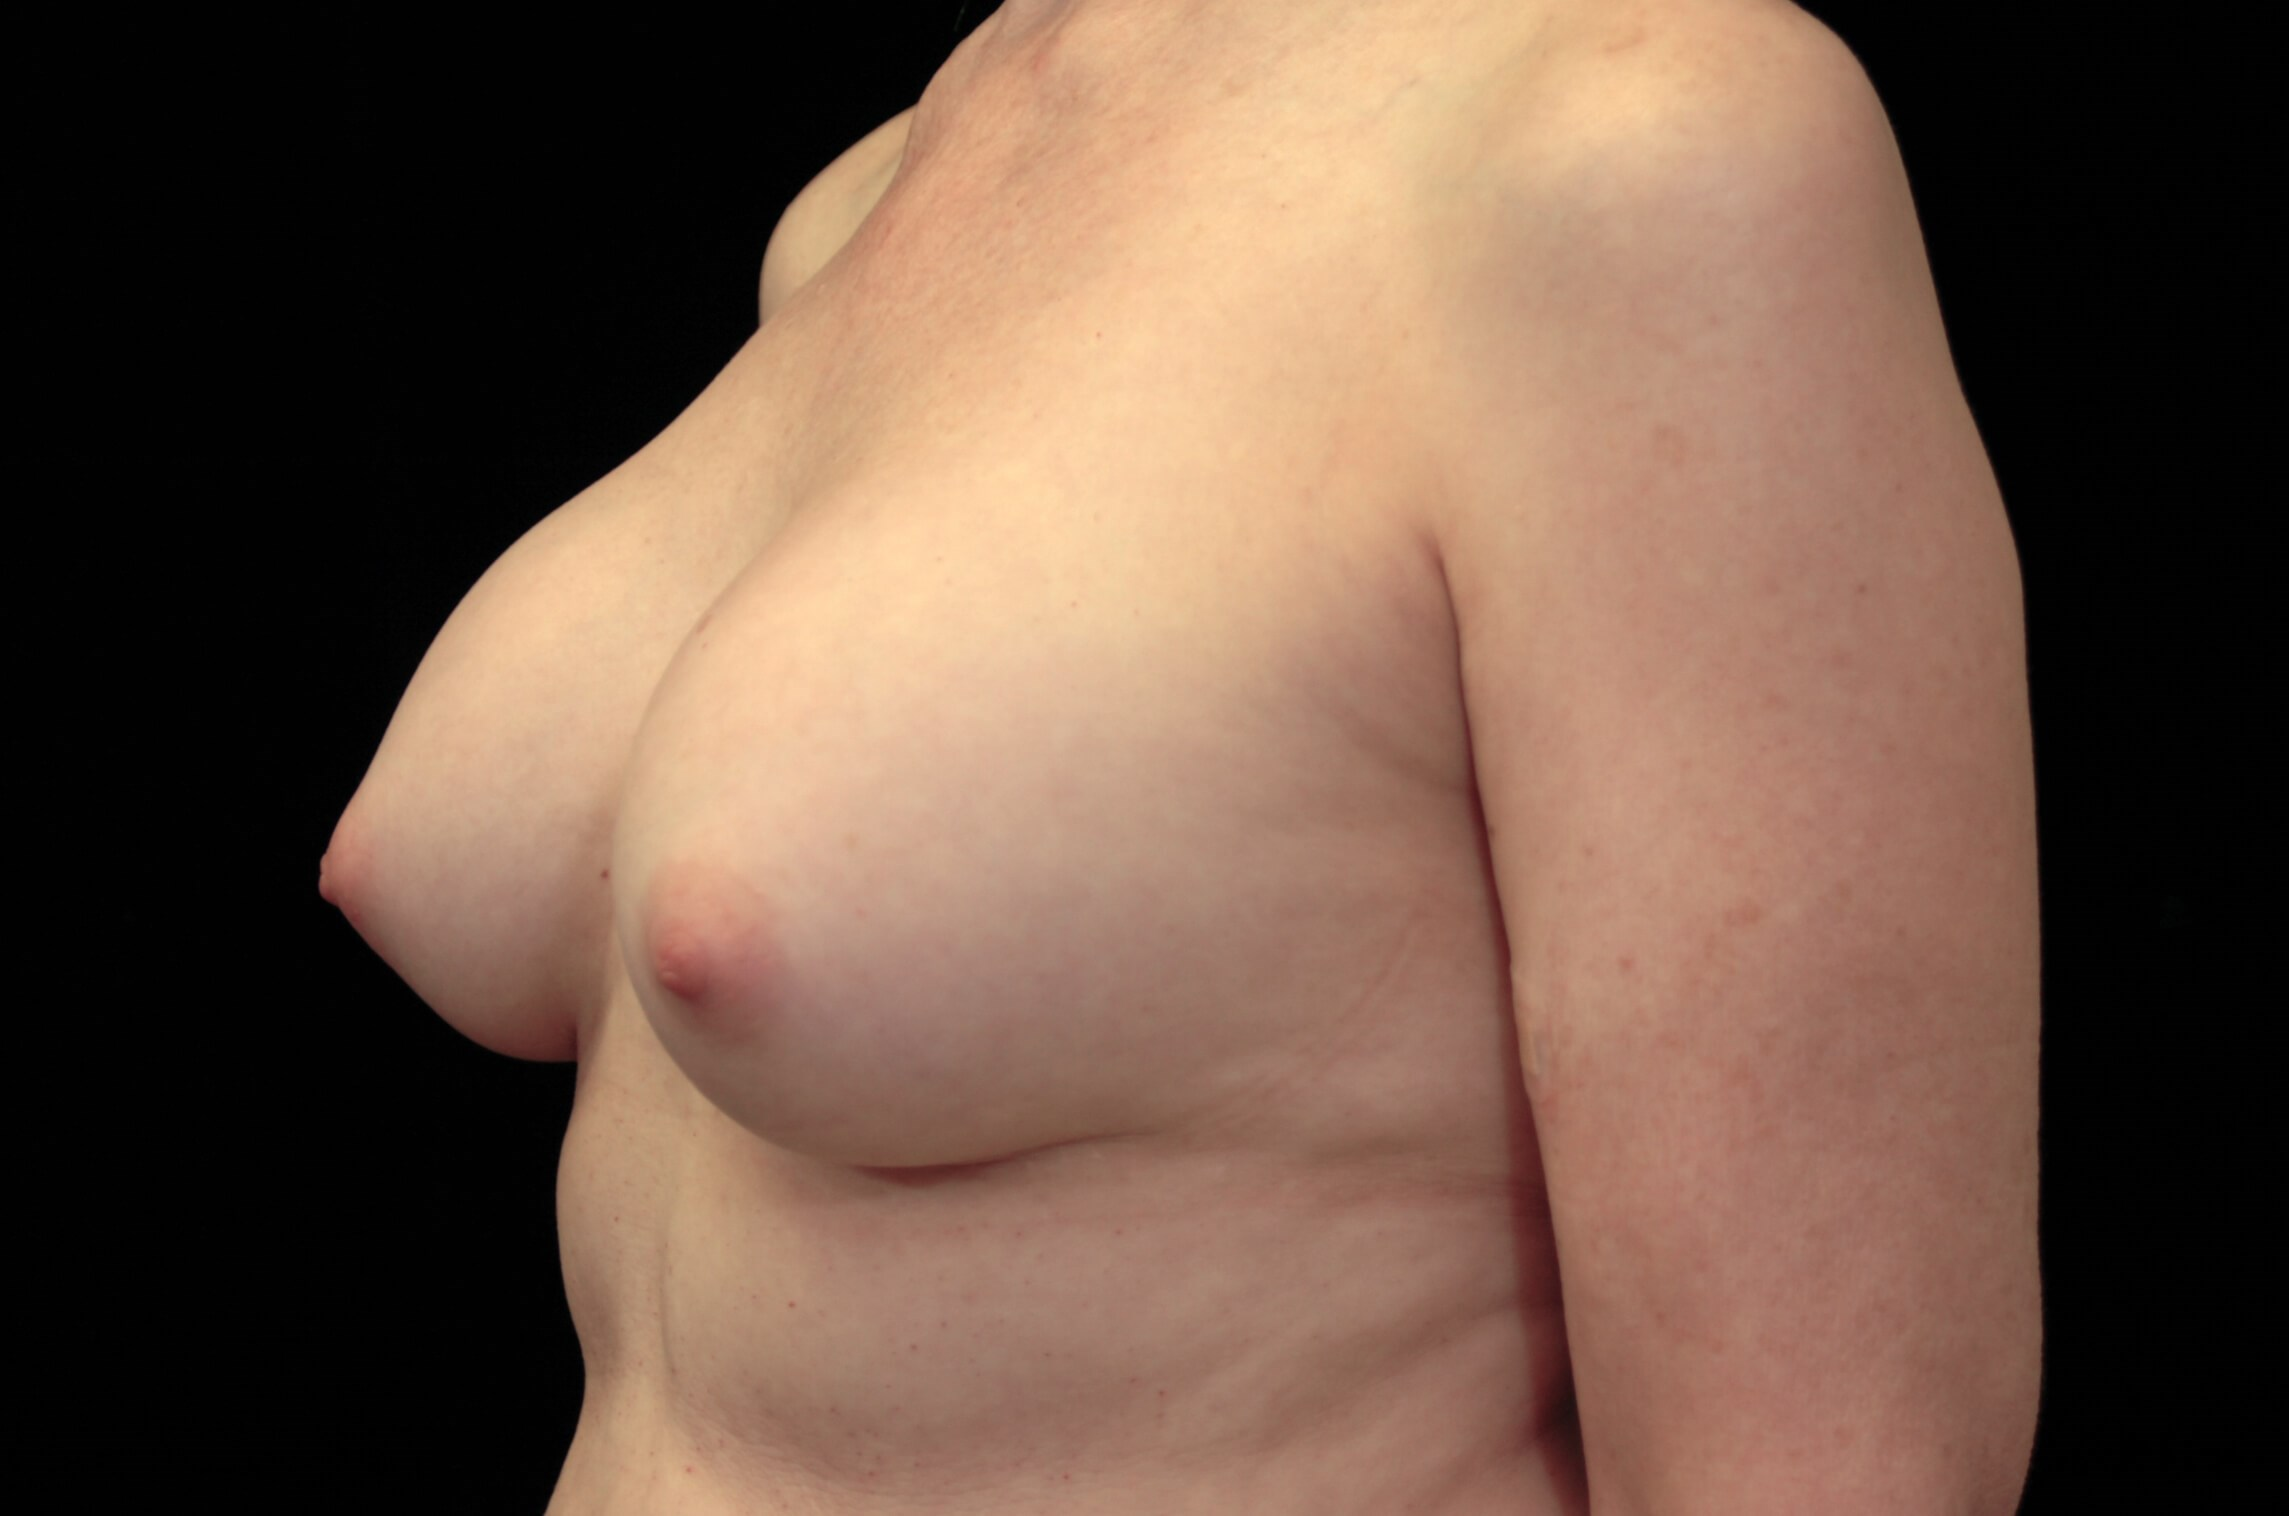 DALLAS, TEXAS WOMAN HAS BREAST REVISION SURGERY